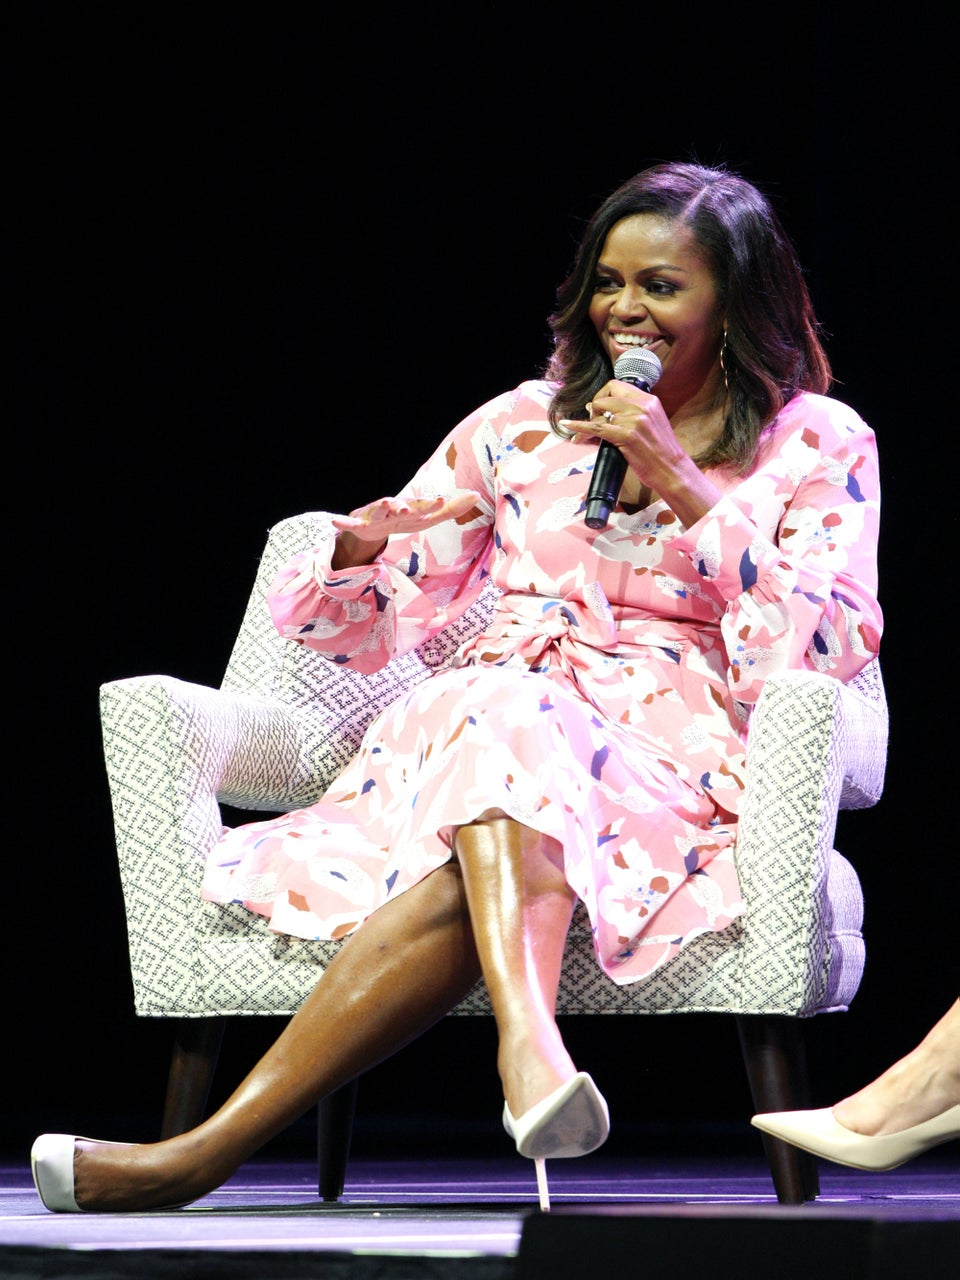 Michelle Obama's Advice To College-Bound First Generation Students: 'This Isn't Supposed To Be Easy'